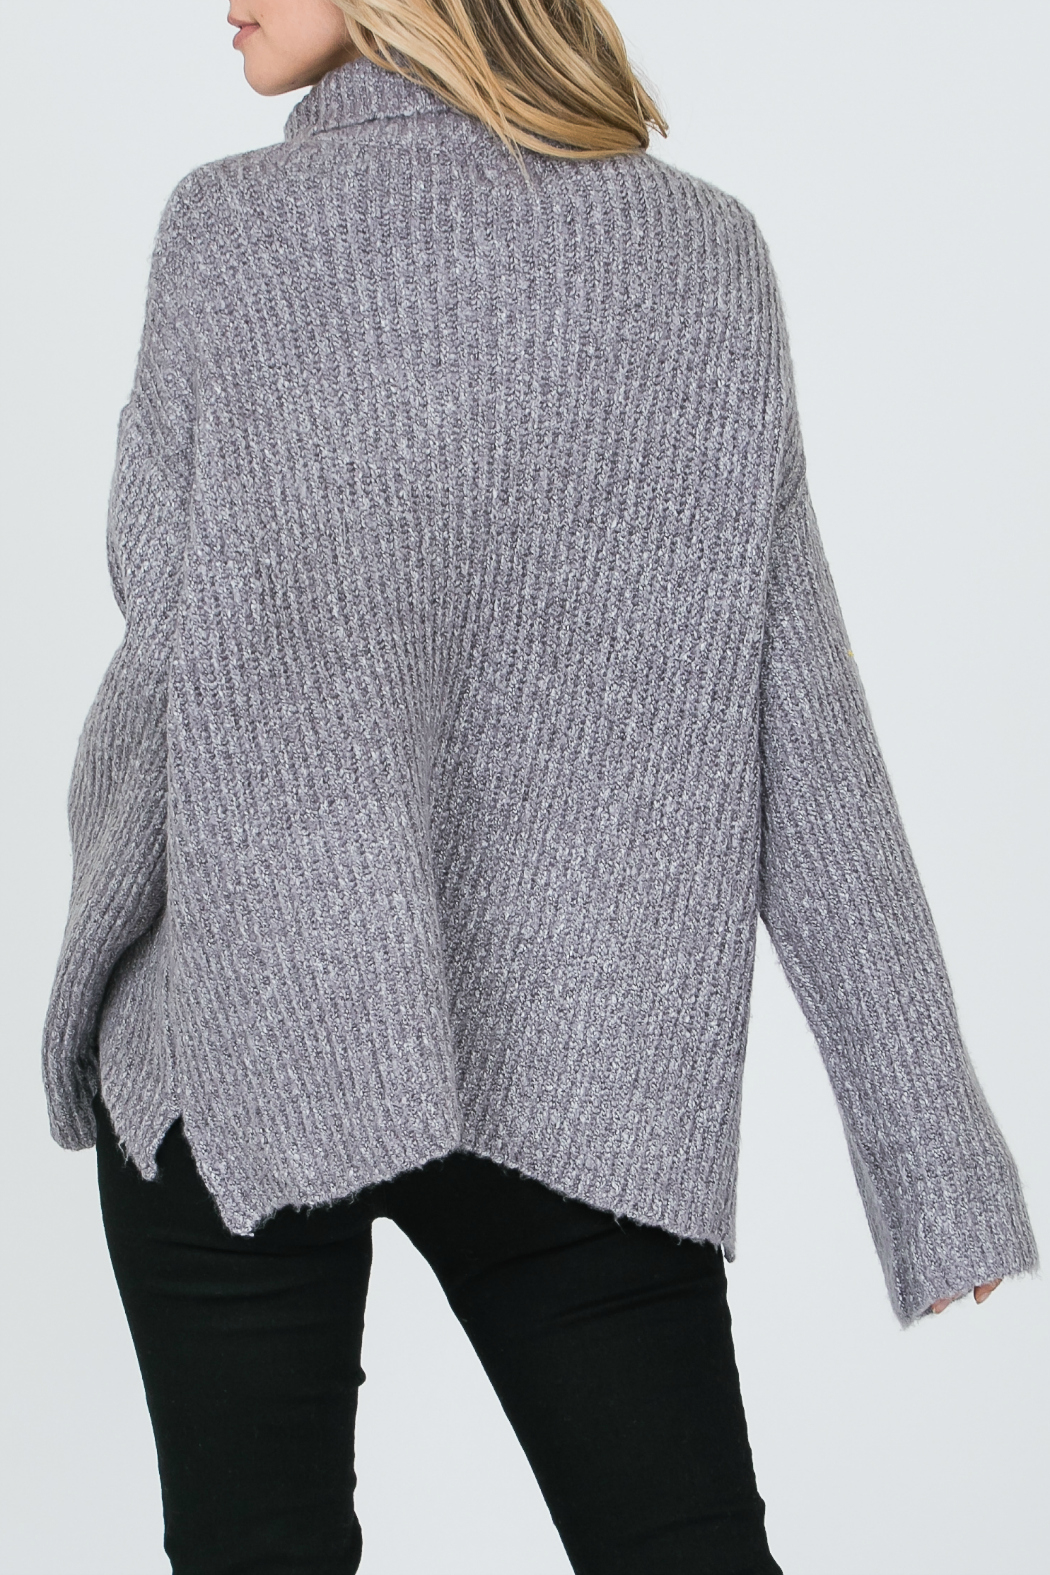 Allie Rose Turtleneck Sweater - Front Full Image